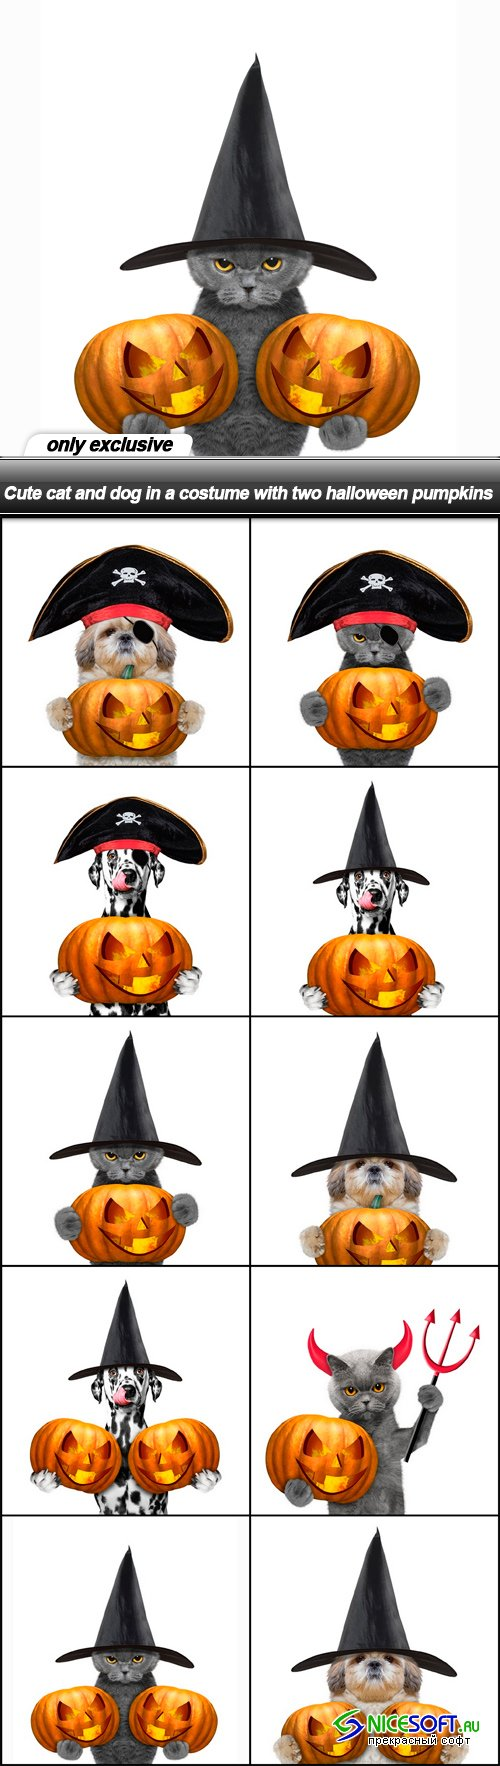 Cute cat and dog in a costume with two halloween pumpkins